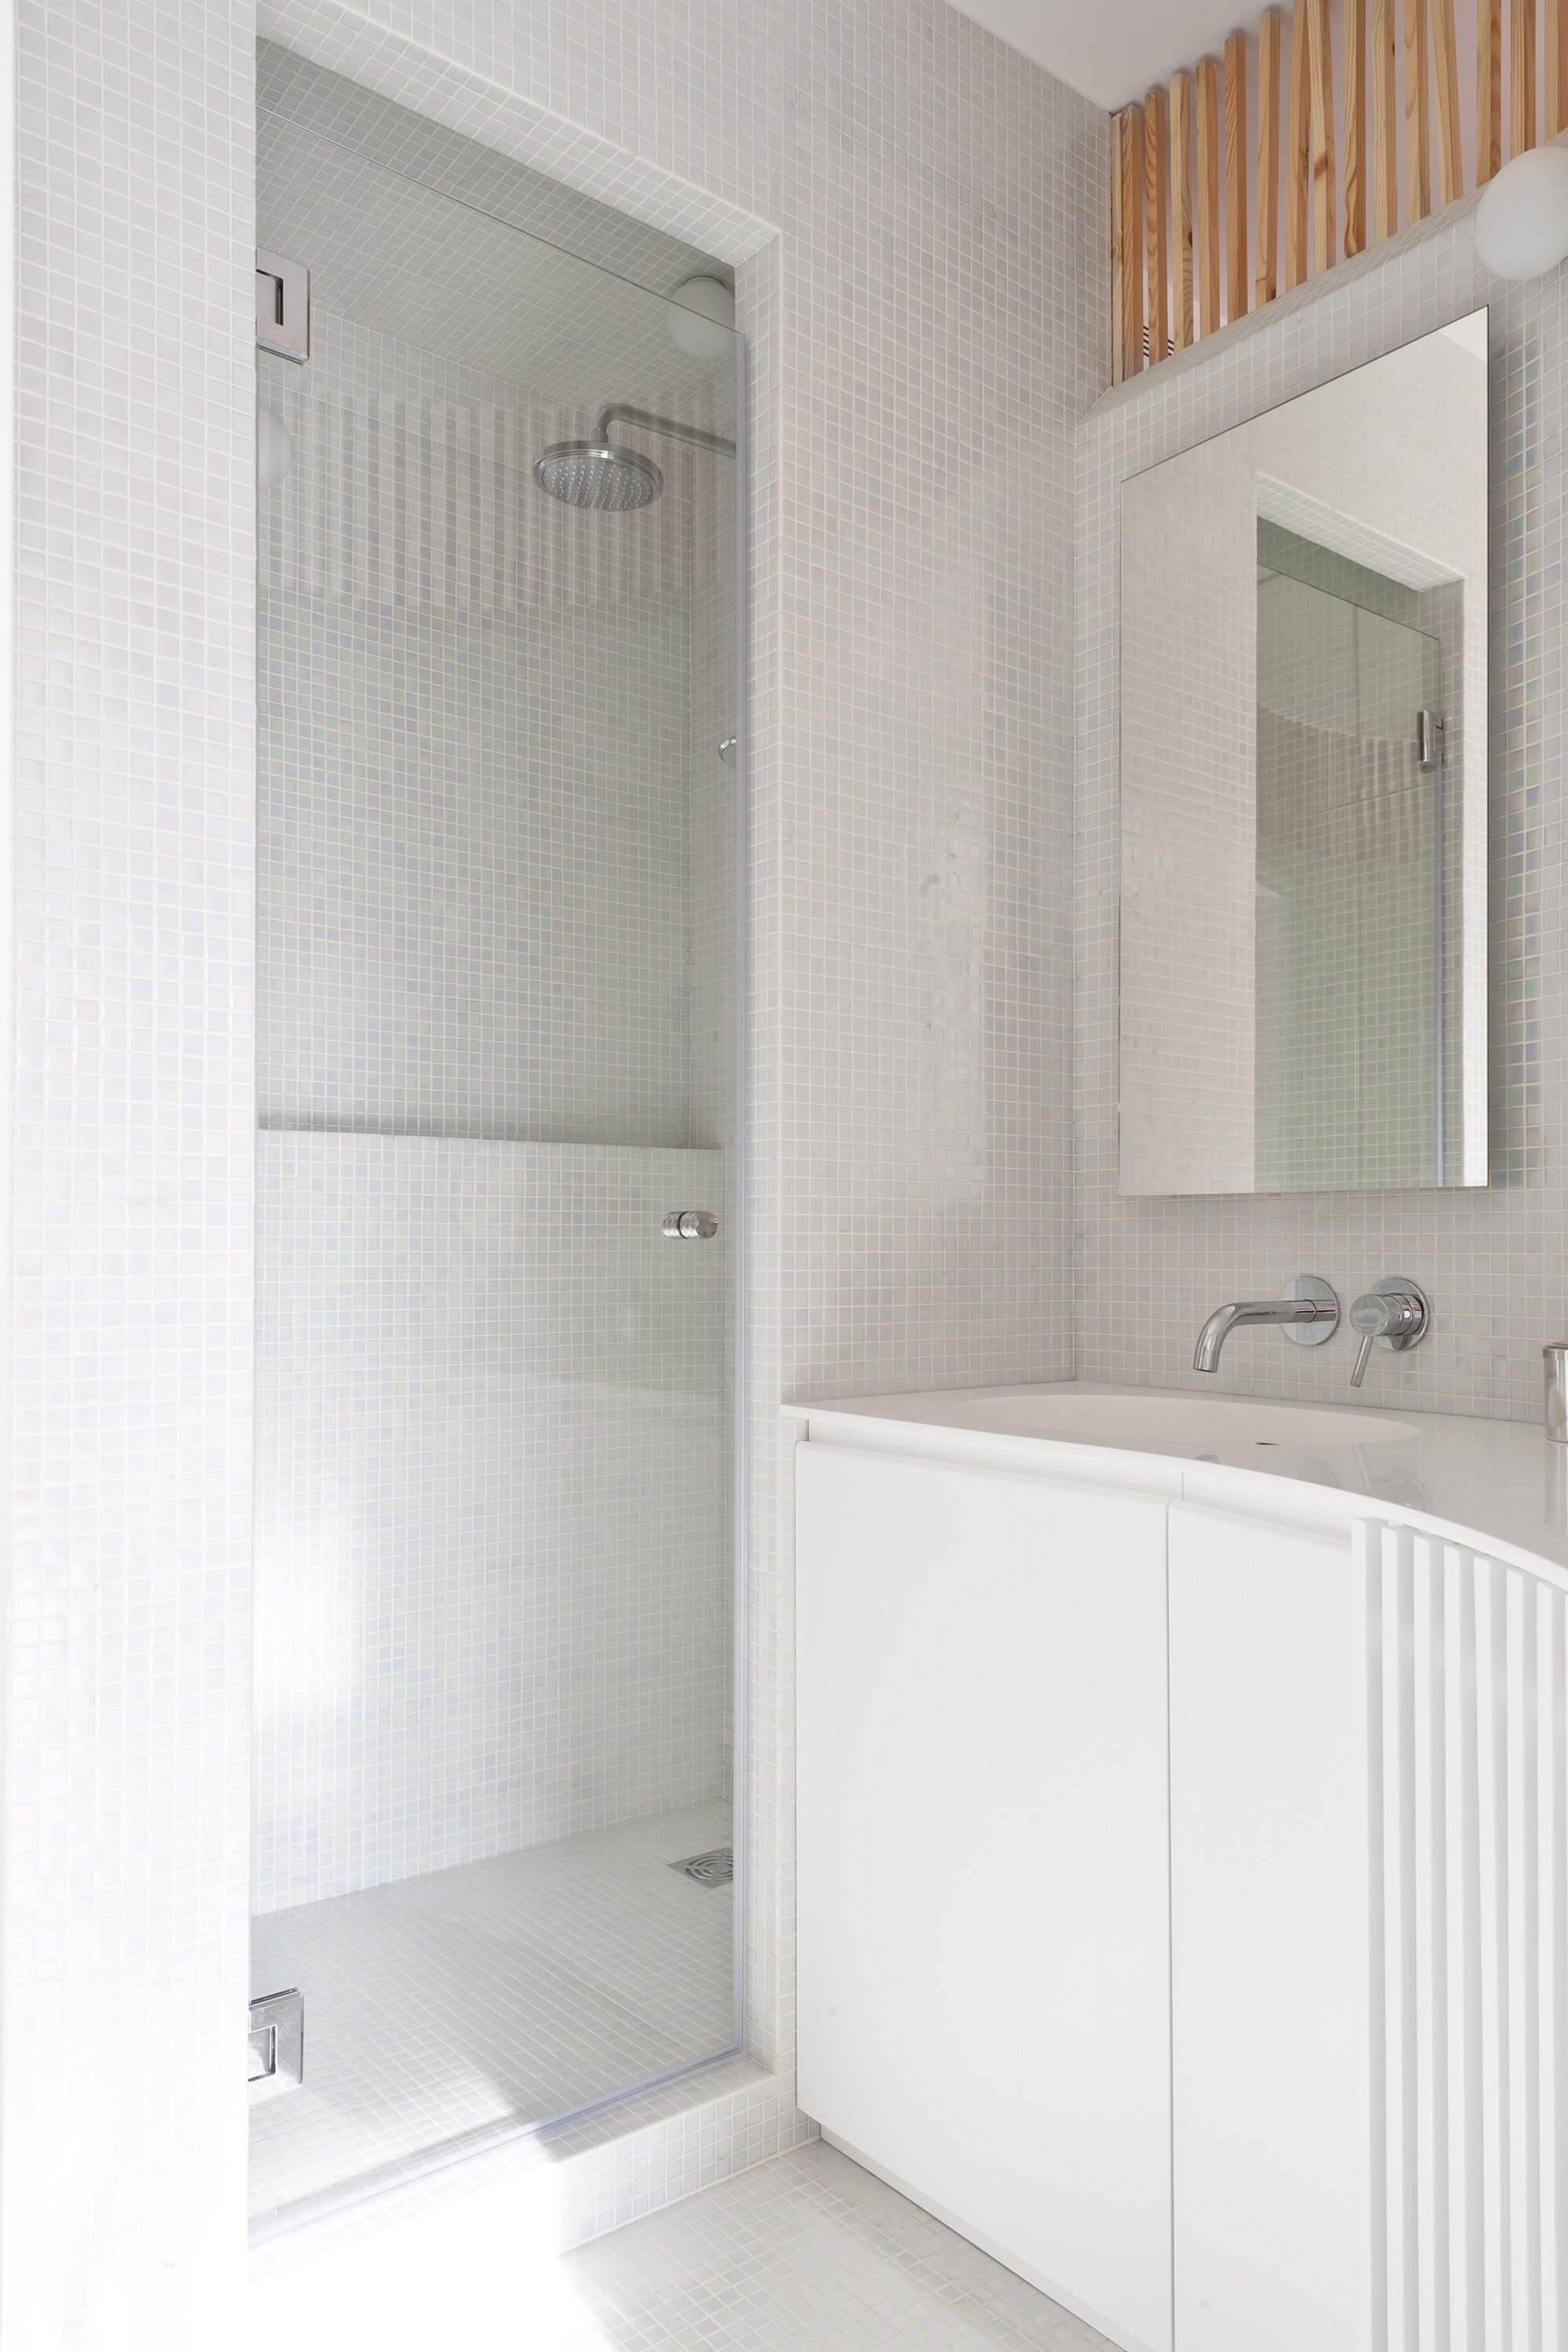 Home Renovation - Small Apartment - Julien Joly Architecture - Paris - Bathroom - Humble Homes